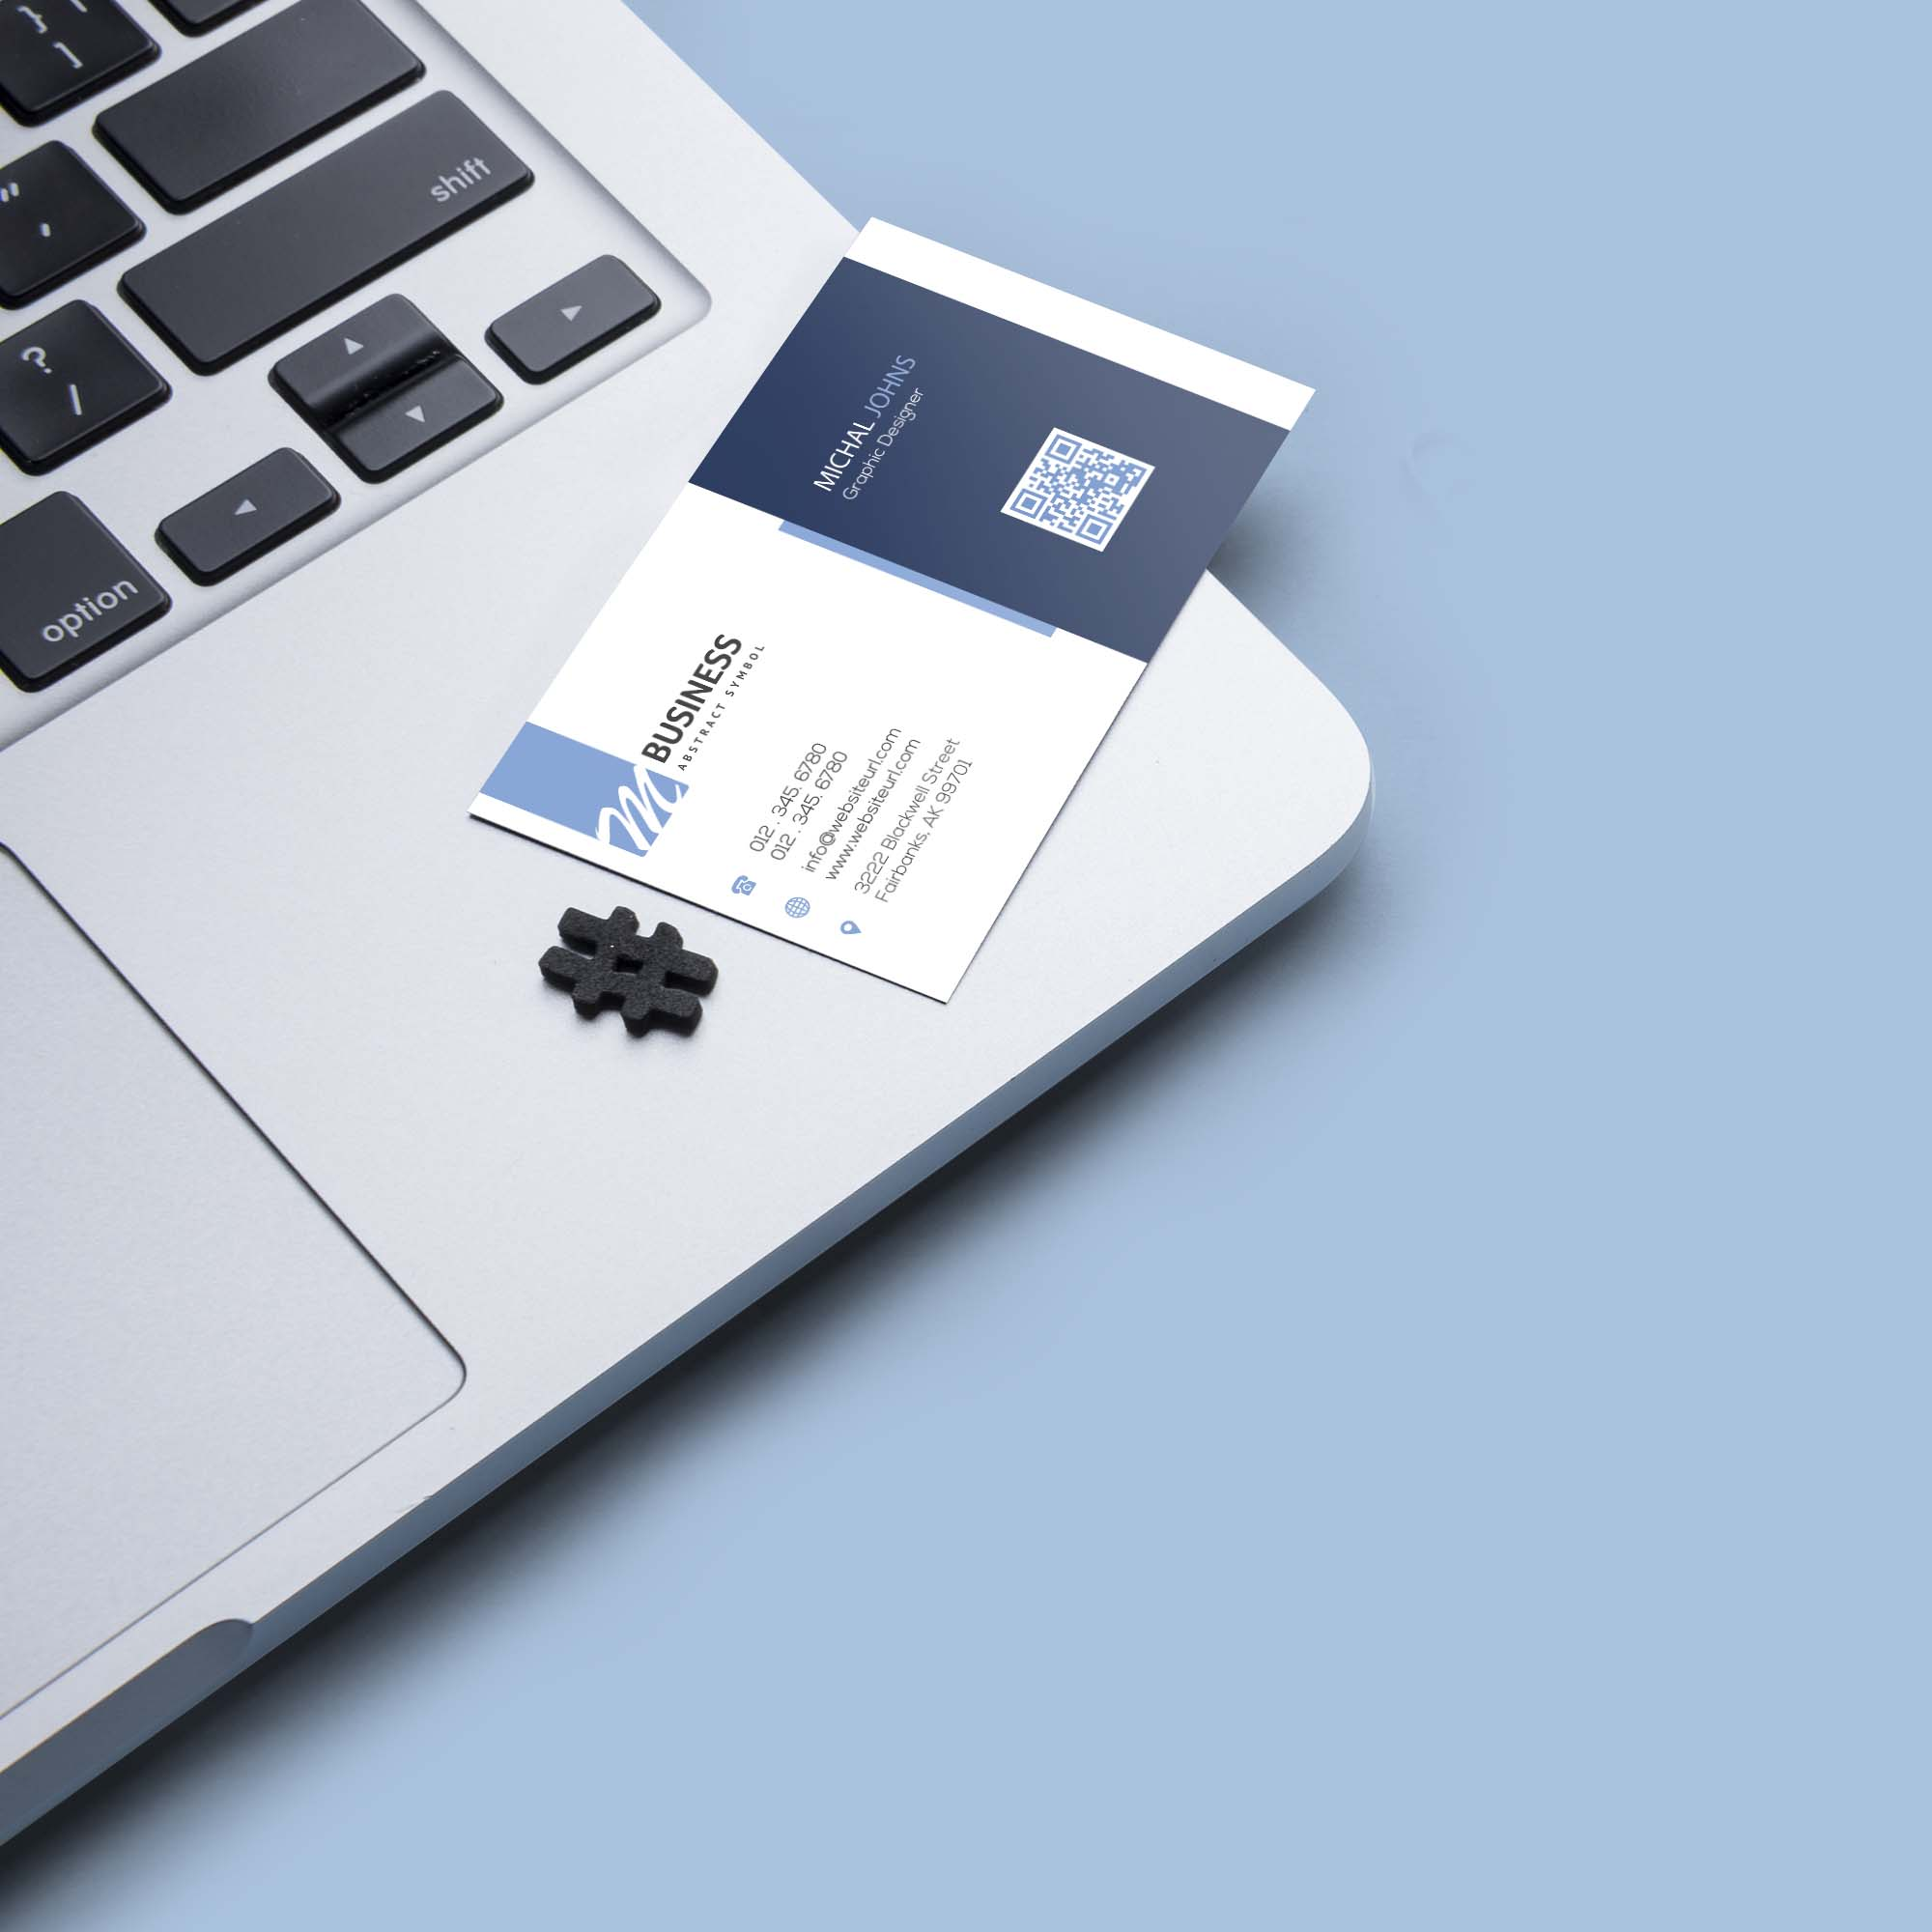 Business Card Mockup on MacBook